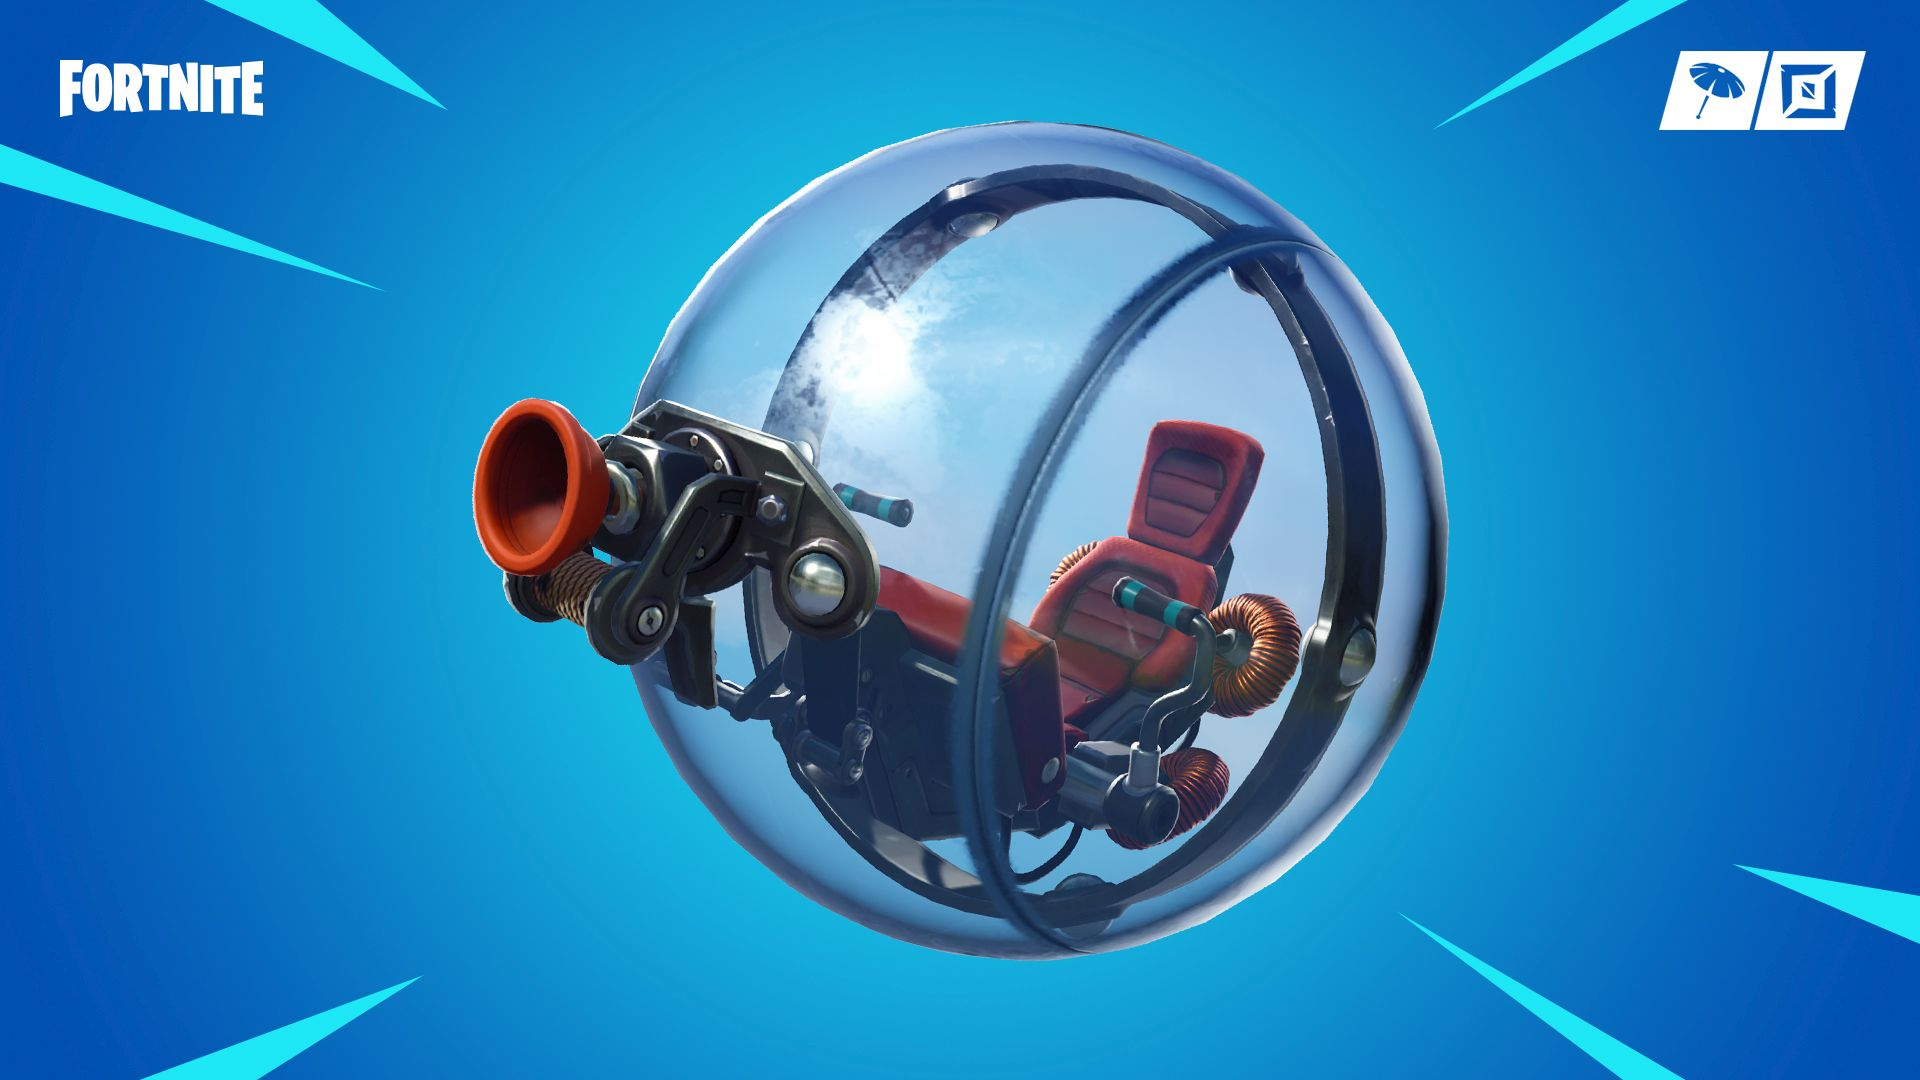 Fortnite Patch 8 10 Adds The Baller Vending Machine Changes